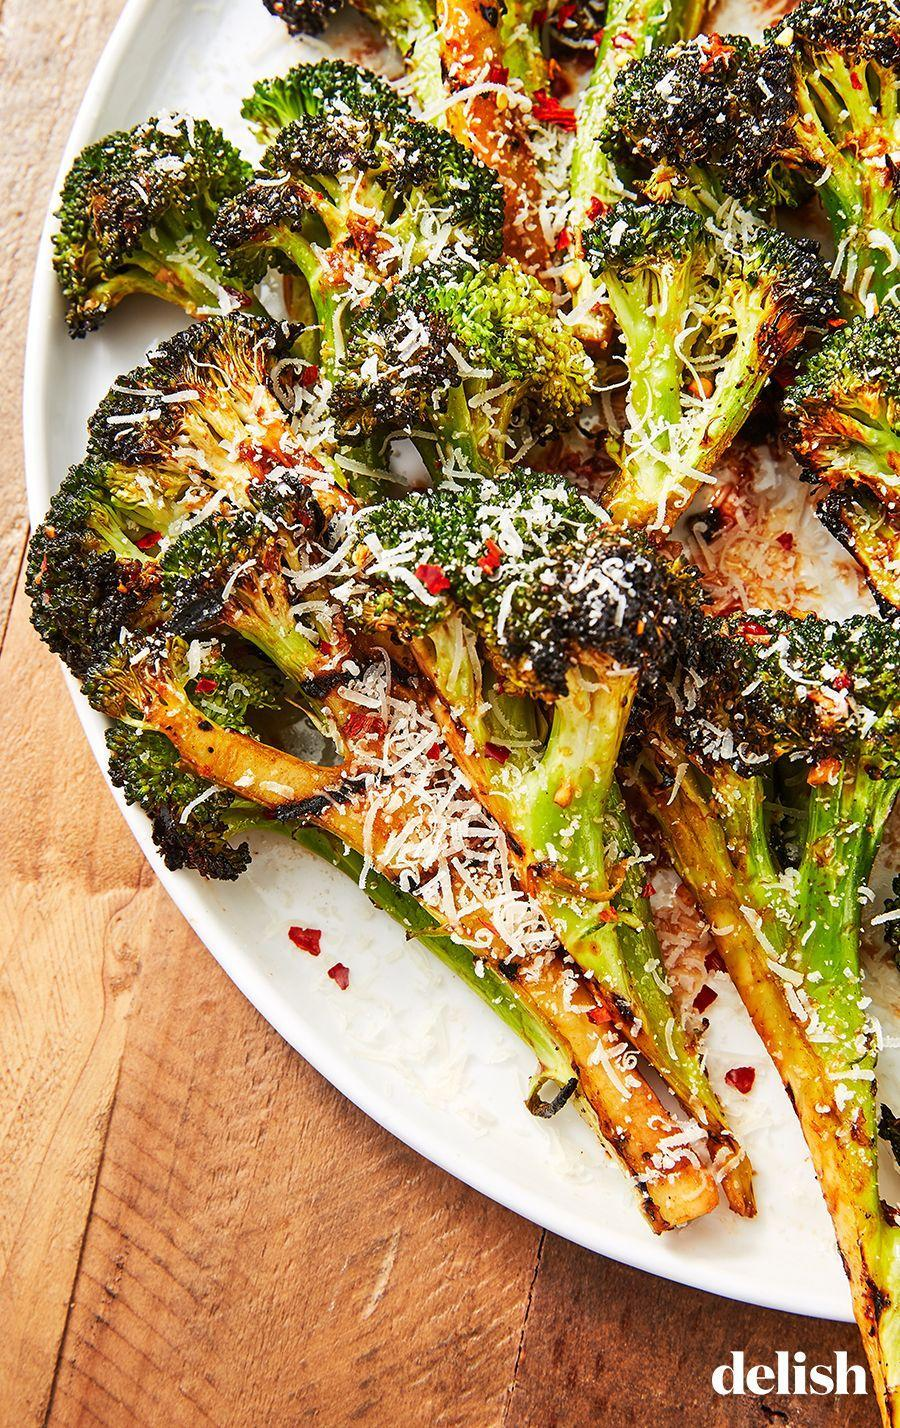 "<p>This will make ANYONE want to eat their vegetables.</p><p>Get the recipe from <a href=""https://www.delish.com/cooking/recipe-ideas/a27185834/grilled-broccoli-recipe/"" rel=""nofollow noopener"" target=""_blank"" data-ylk=""slk:Delish"" class=""link rapid-noclick-resp"">Delish</a>.</p>"